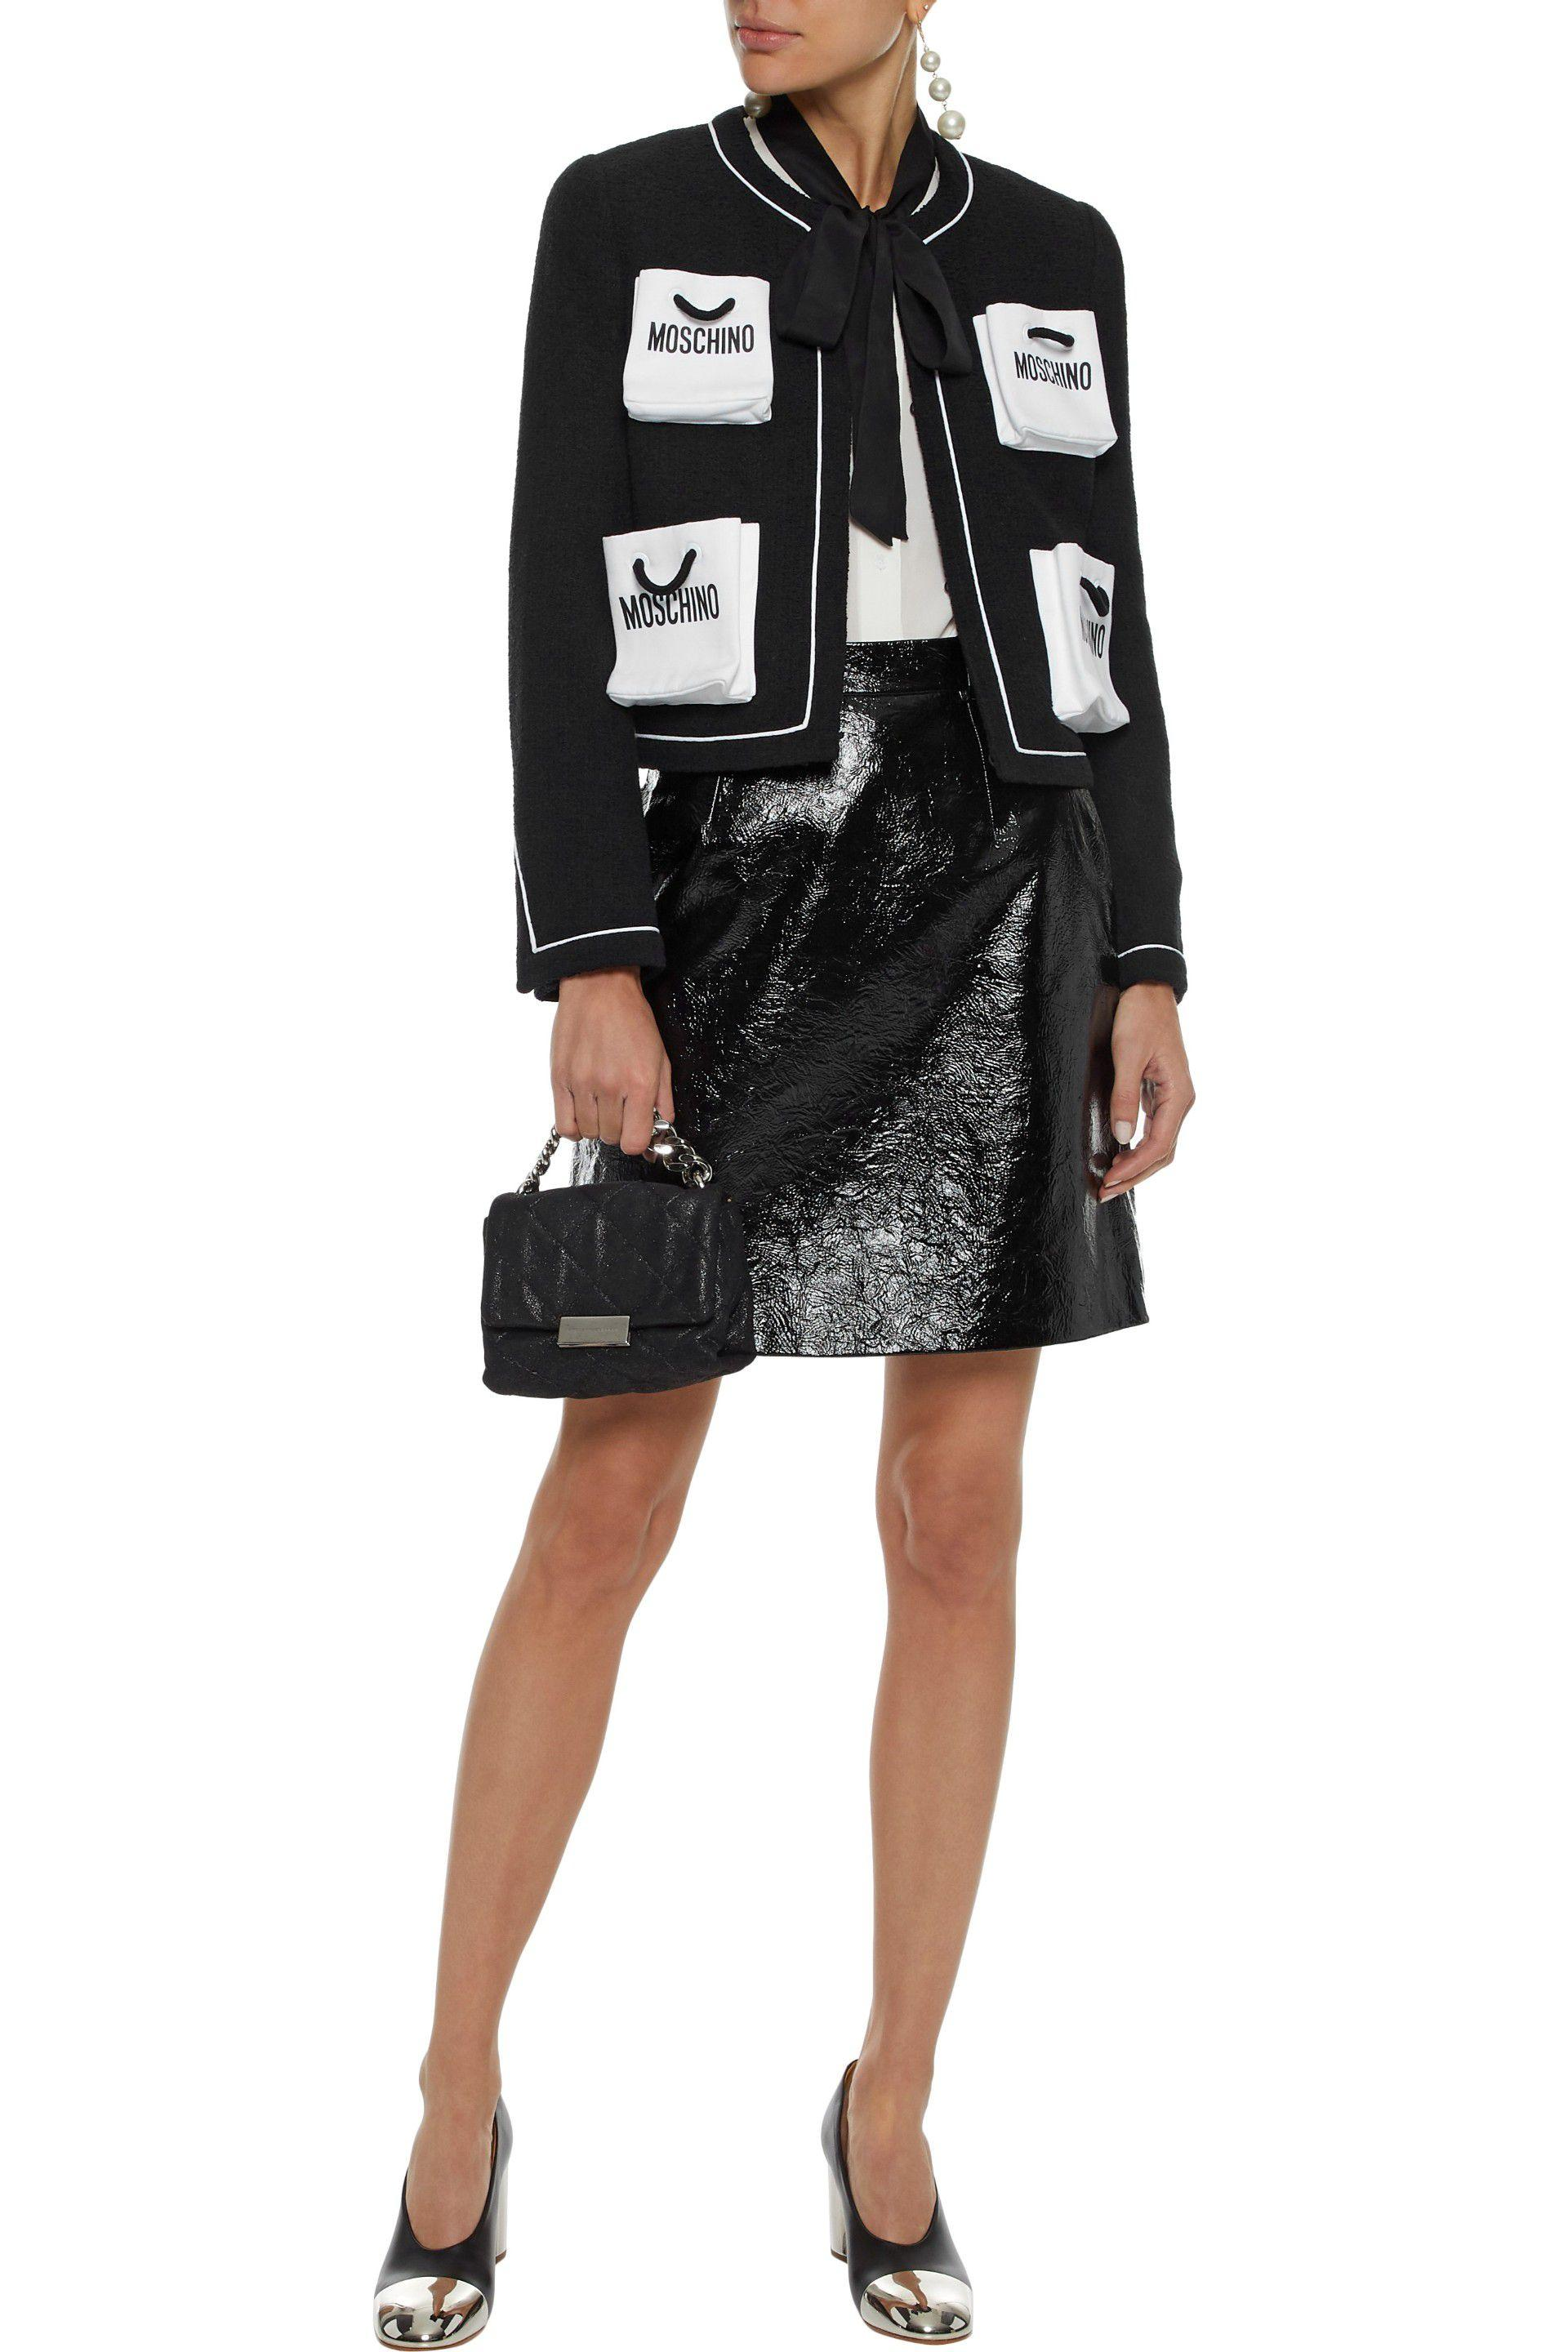 5338d187698 Lyst - Moschino Woman Printed Cotton-blend Tweed Jacket Black in Black